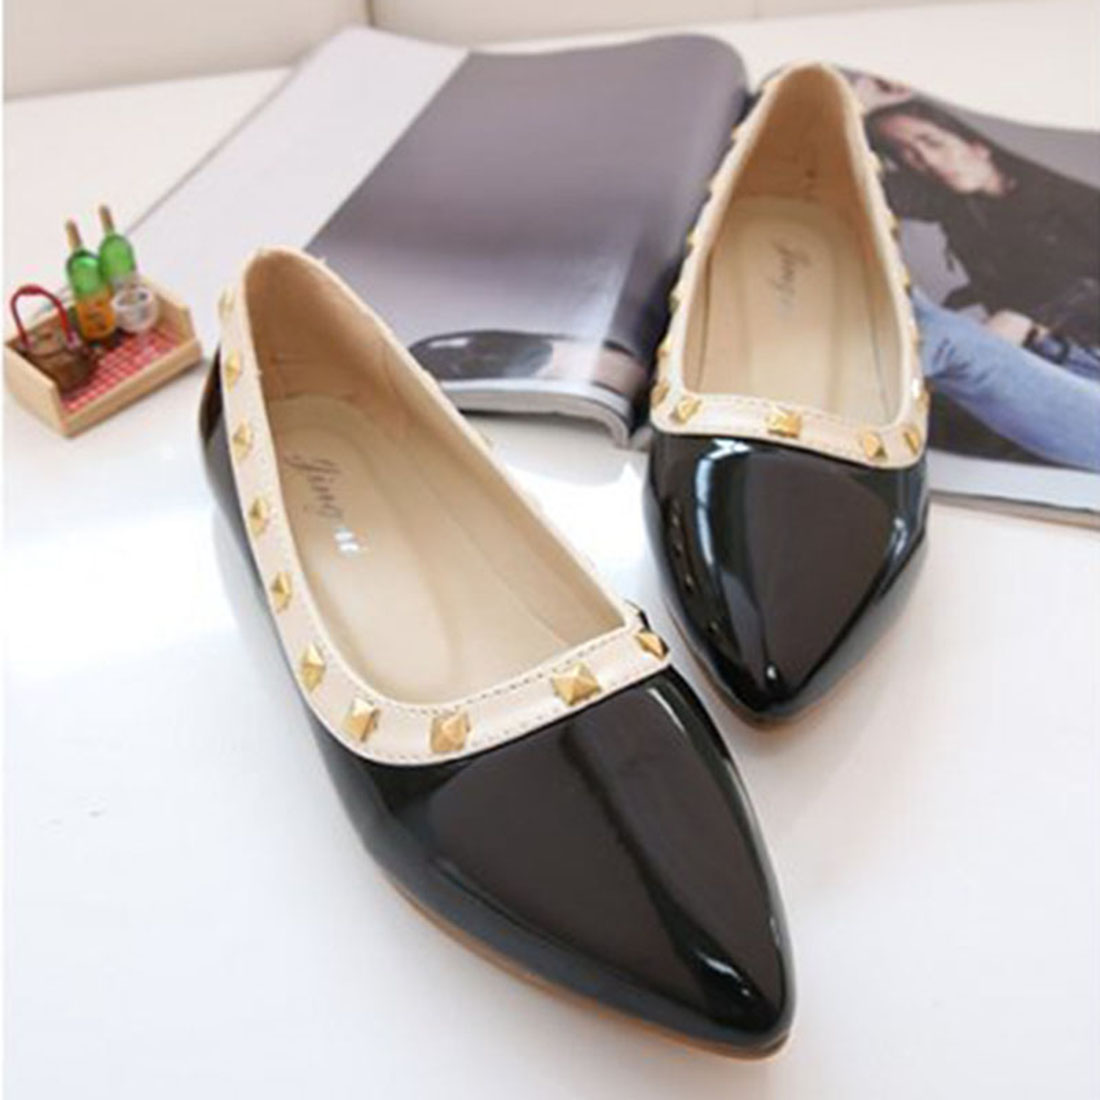 NEW Fashion 2016 Flats Shoes Women Ballet Princess Shoes For Casual Boat Shoes Rivets Decoration Brand Women Flats beyarne rivets decoration brand shoes flats women spring autumn fashion womens flats boat shoes sexy ladies plus size 11